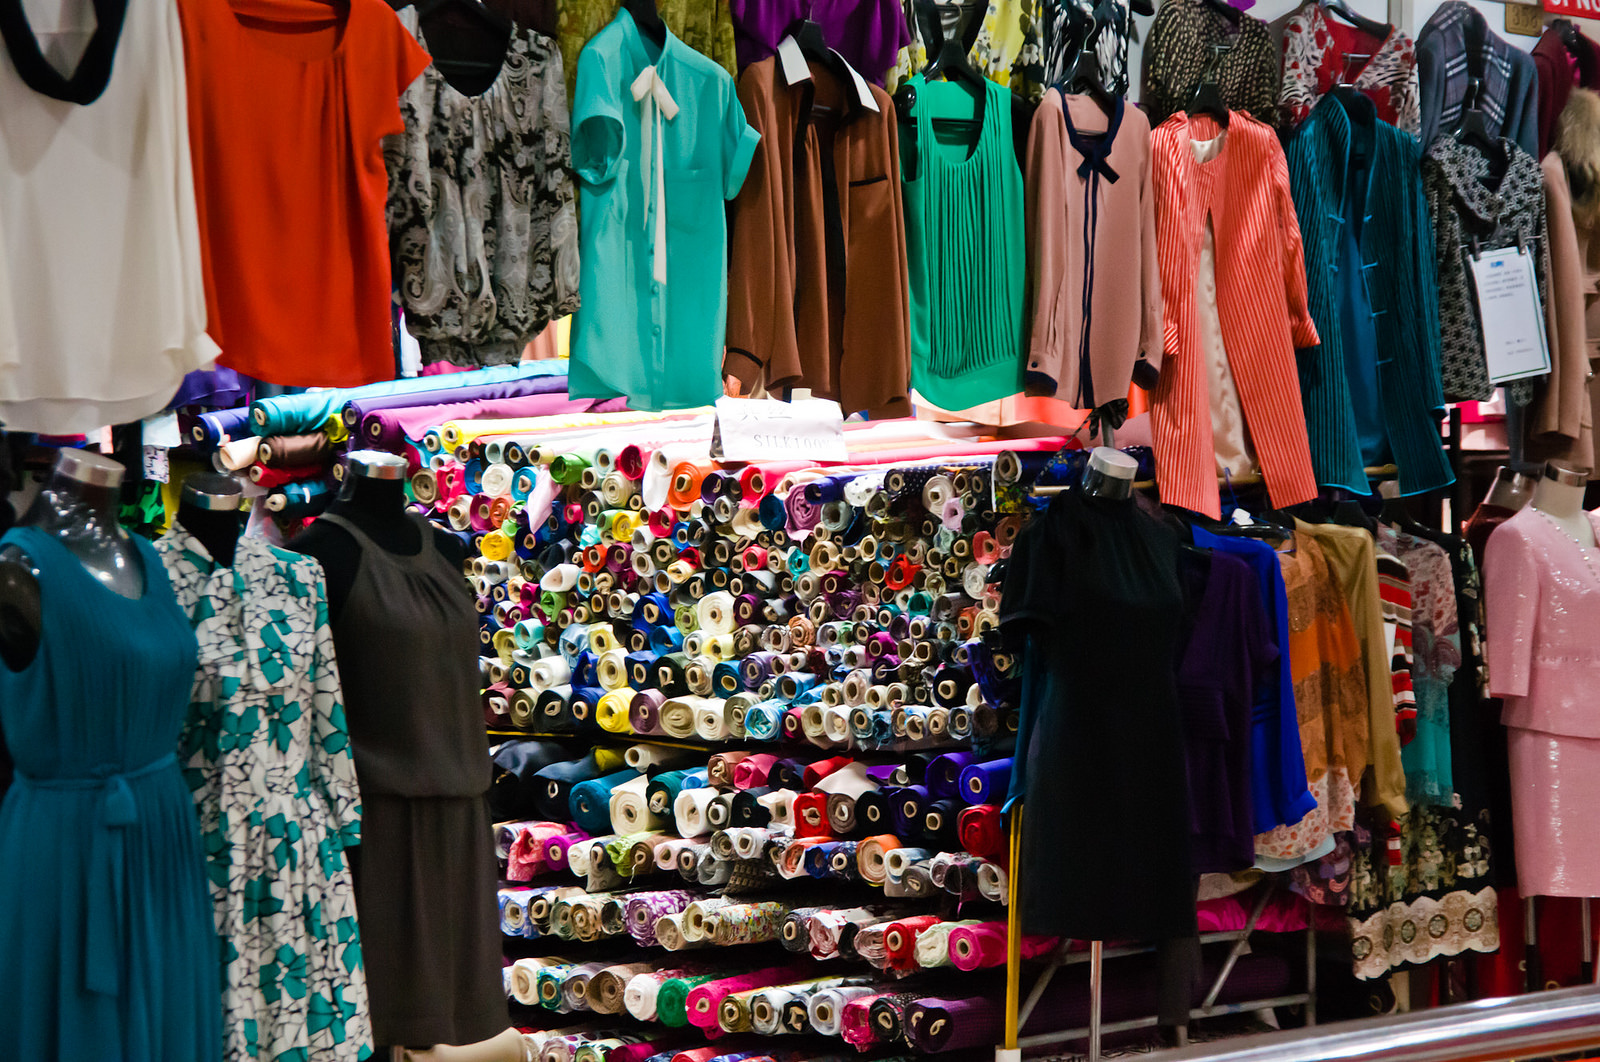 South Bund Fabric Market | ©Mitch Altman/Flickr